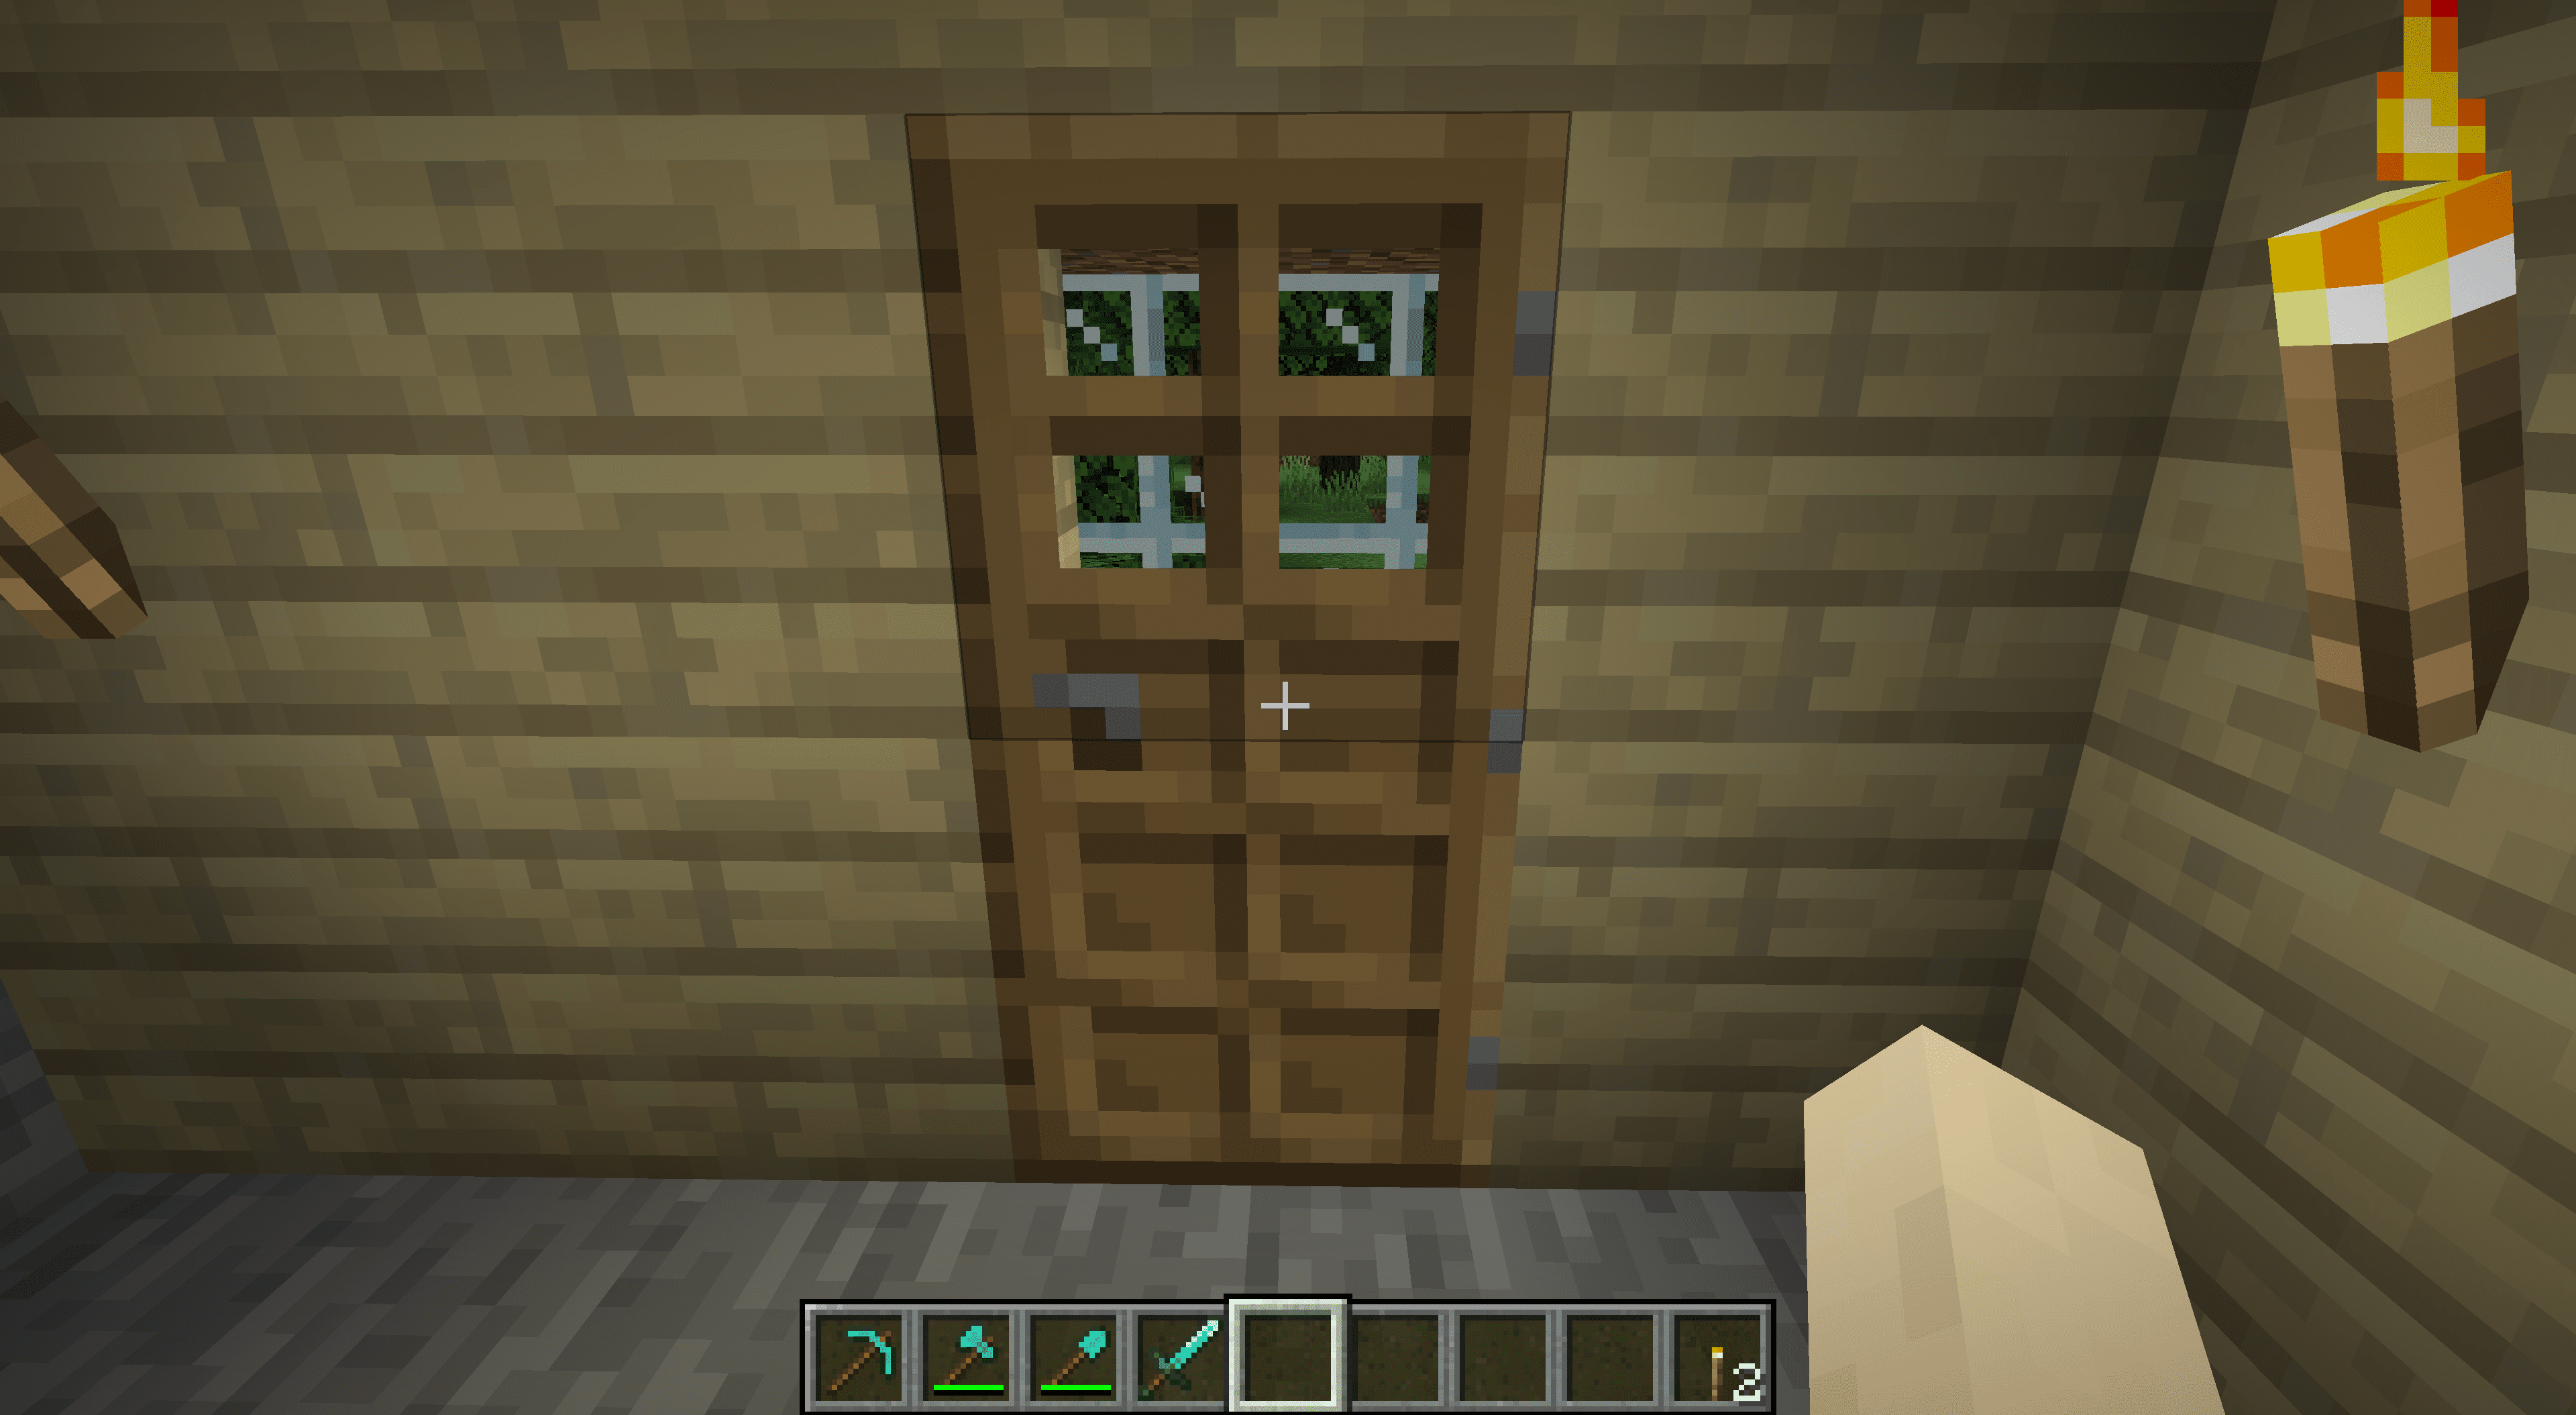 A door leading to a mine in Minecraft.